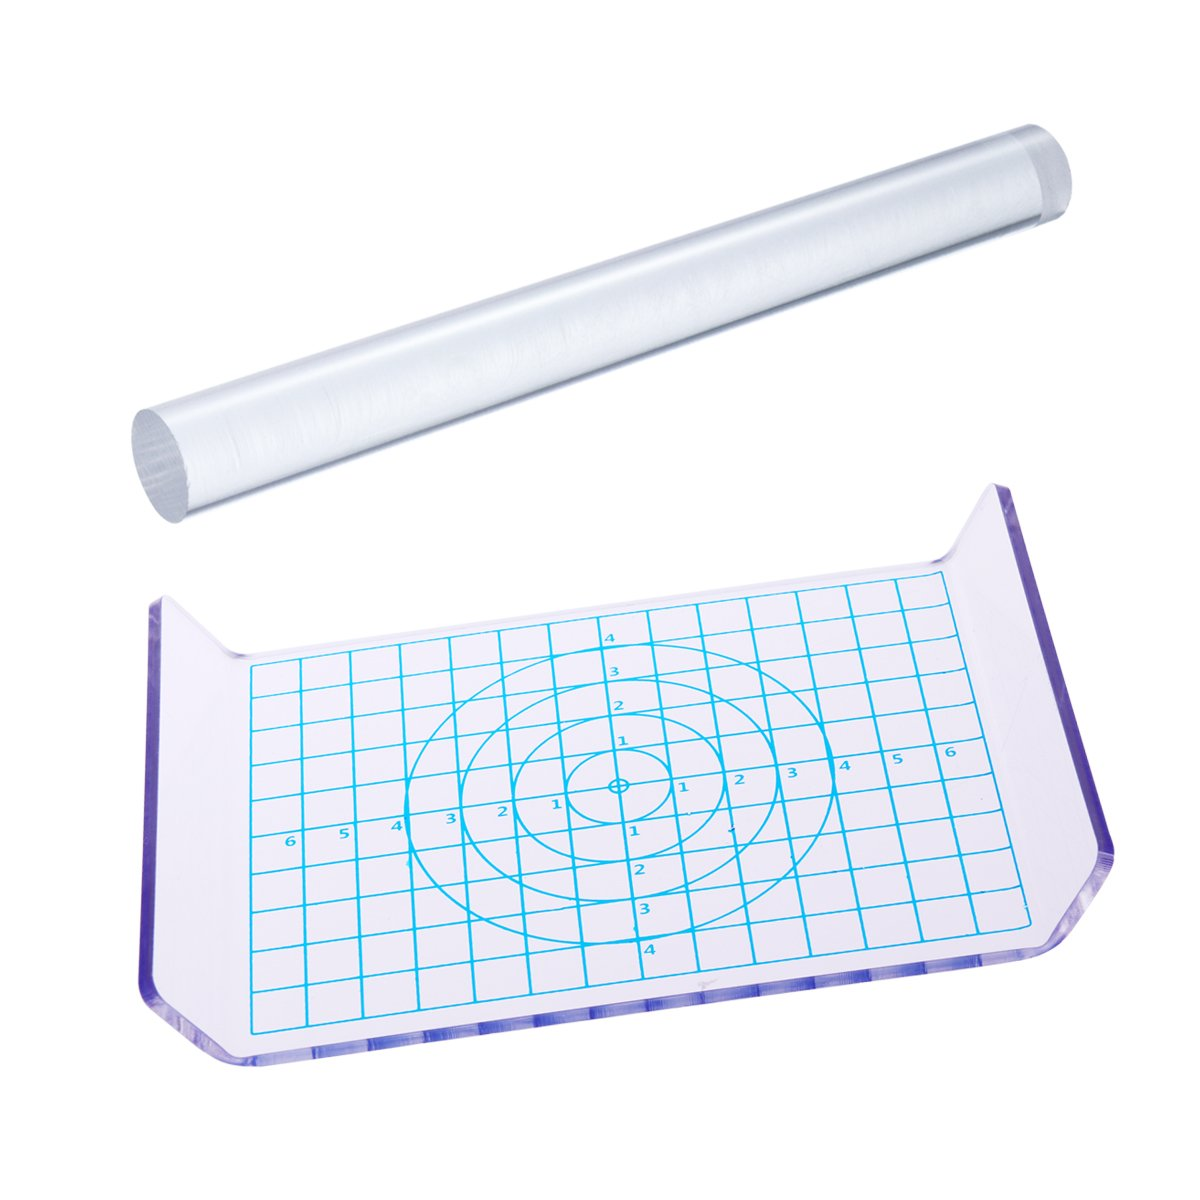 ROSENICE Acrylic Clay Roller with Acrylic Sheet with Measurement Grid for Shaping and Sculpting 2pcs